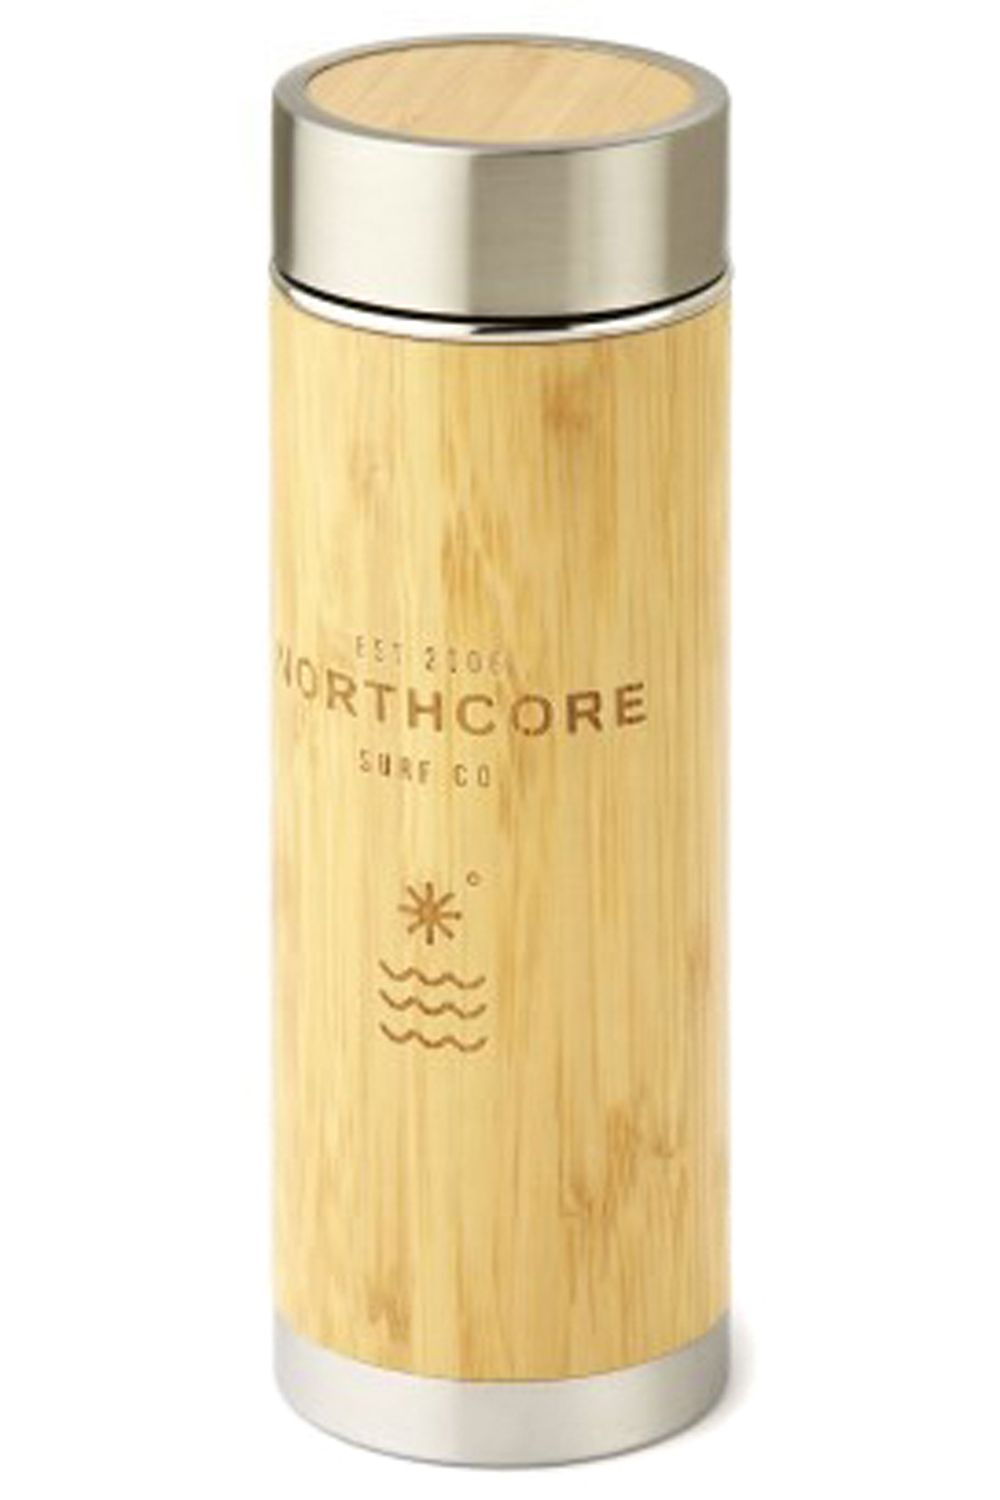 DV Northcore Termo BAMBOO STAINLESS STEEL 360ML Bamboo